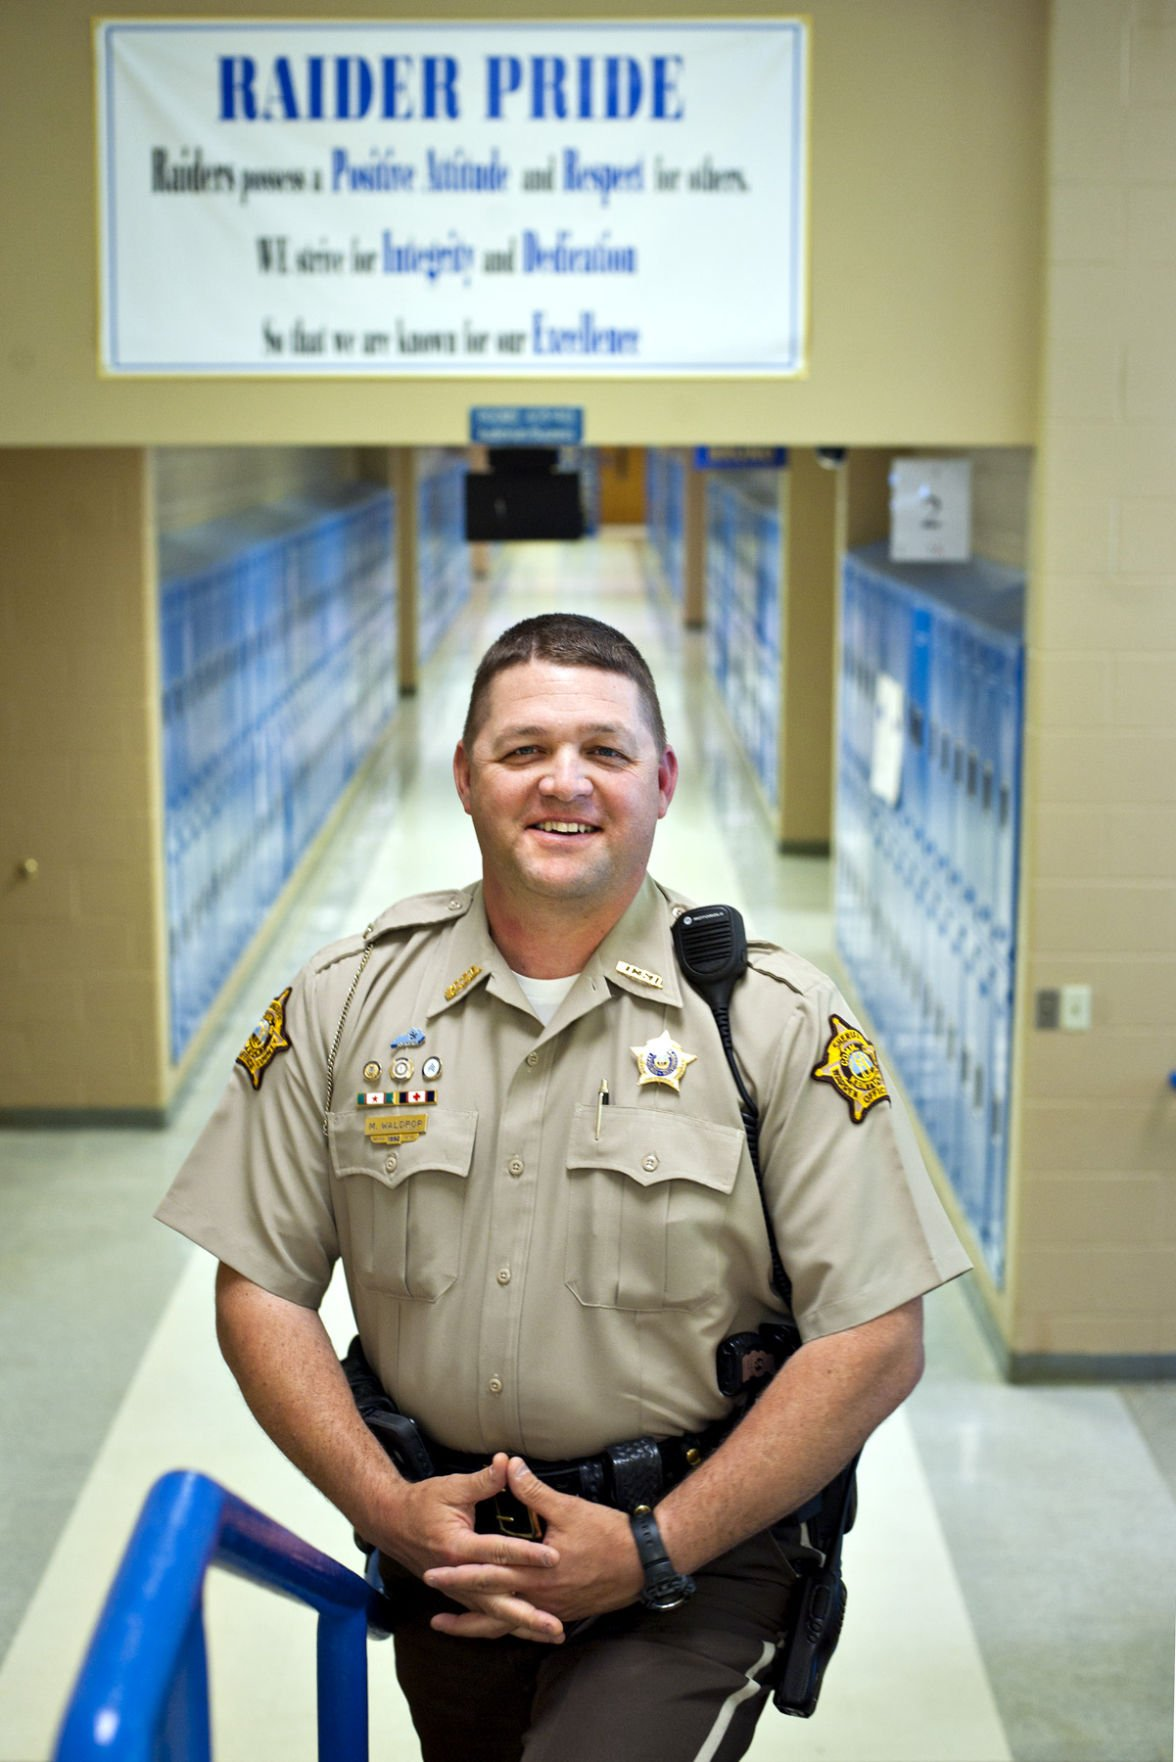 Waldrop named Kentucky School Resource Officer of the Year